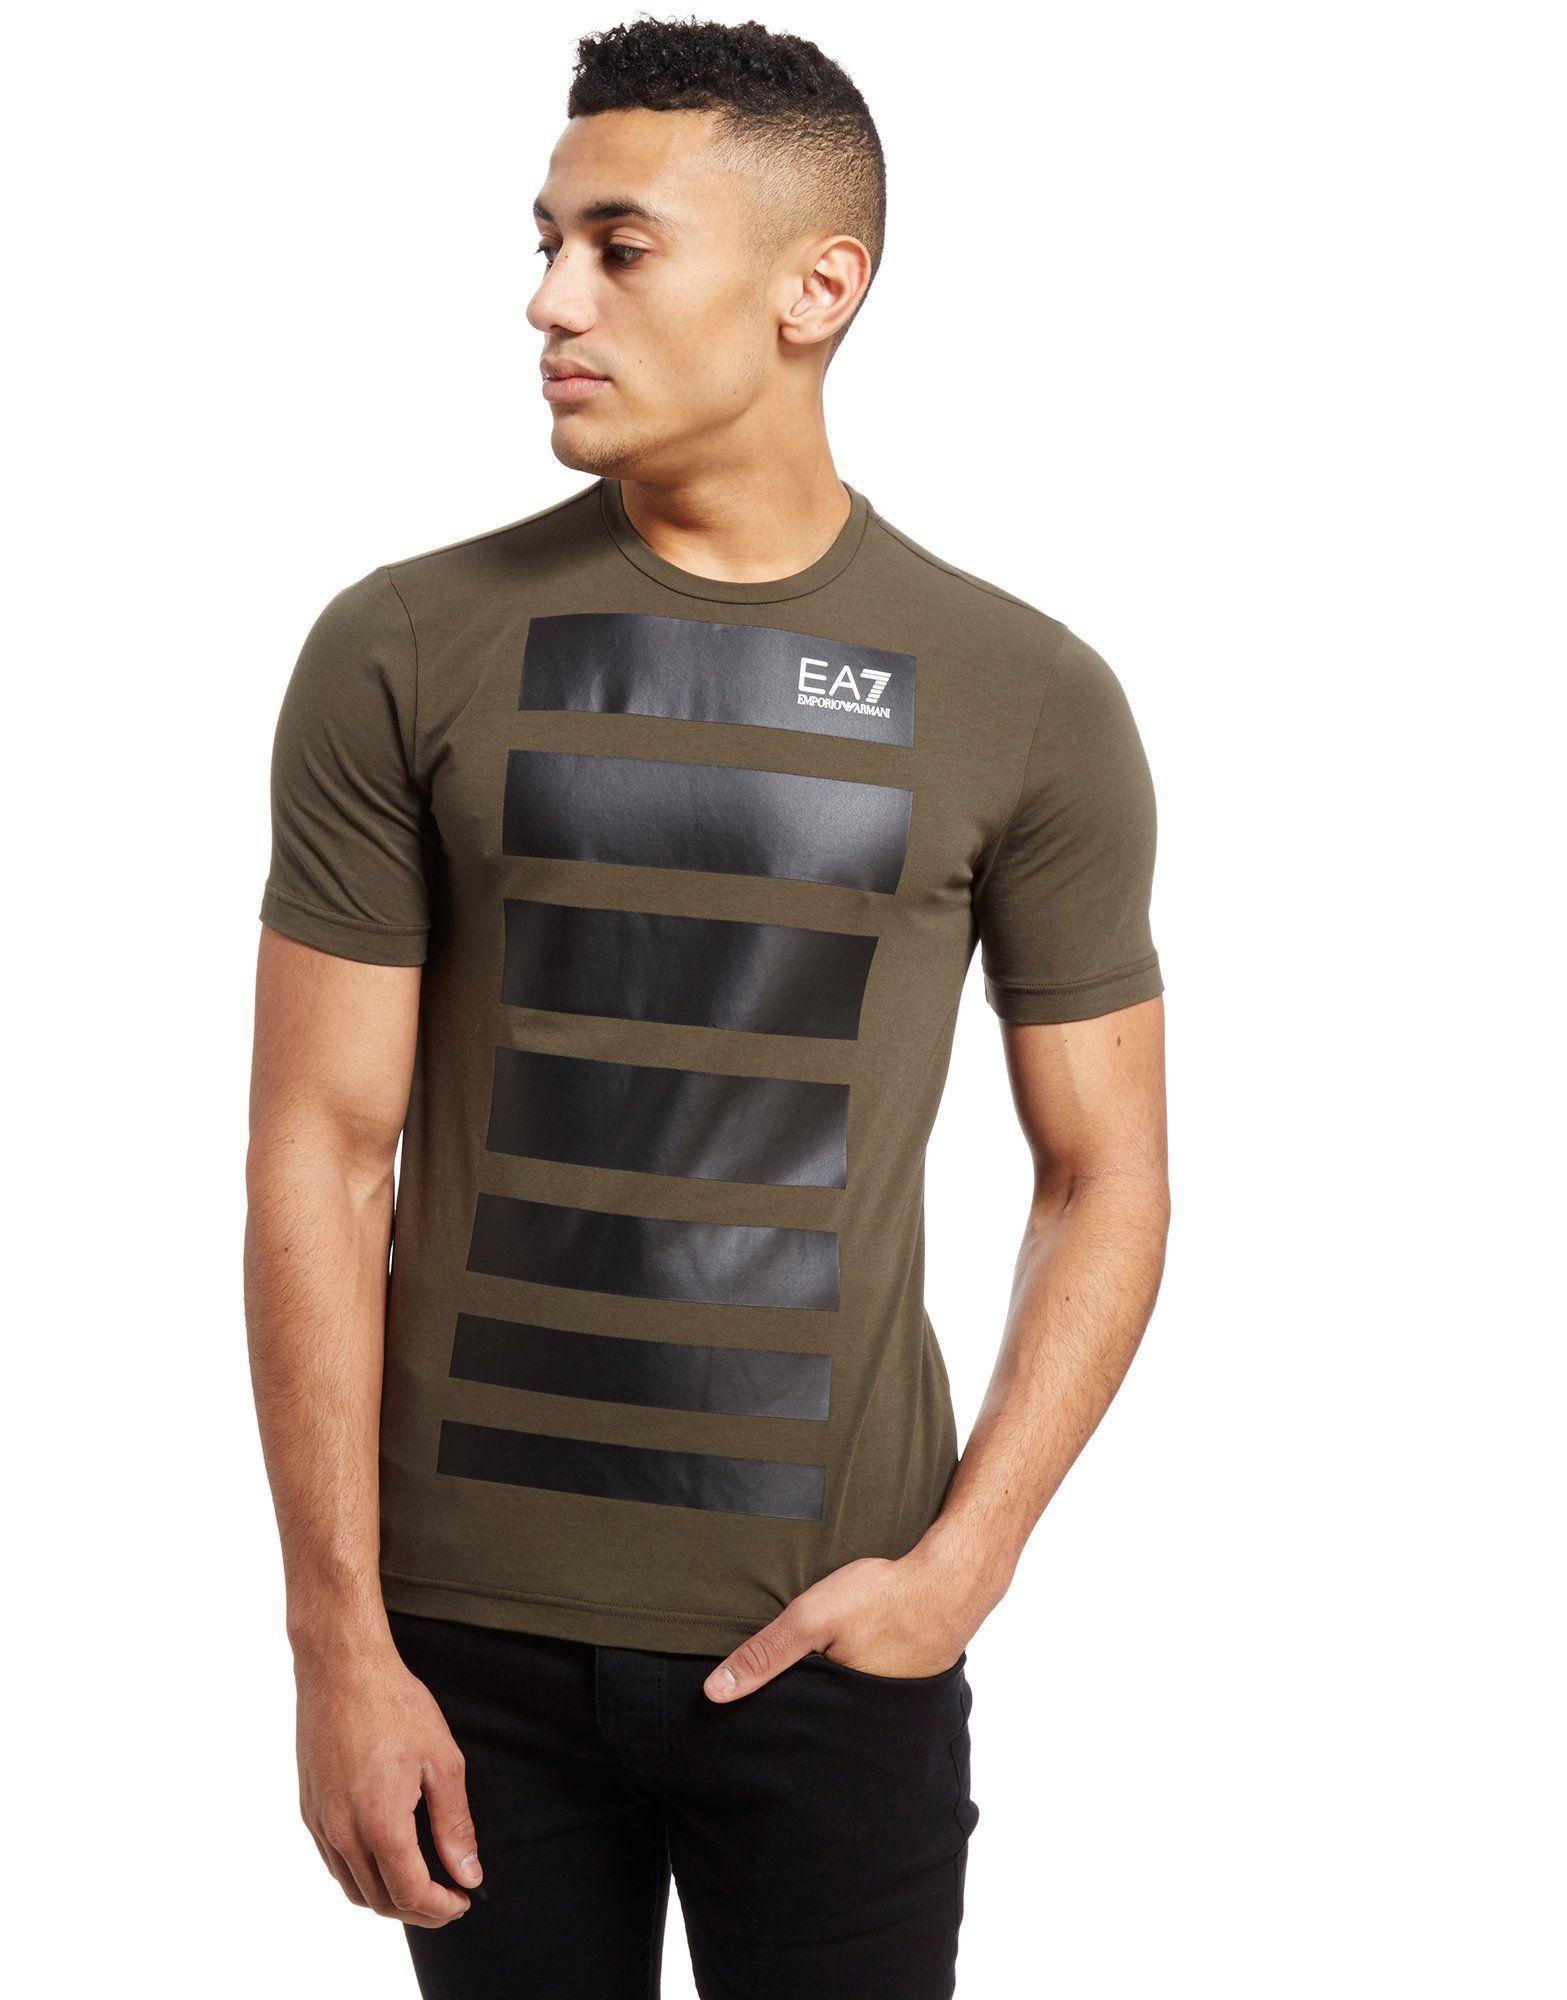 Emporio Armani EA7 7 Lines T-Shirt - Shop online for Emporio Armani EA7 7  Lines T-Shirt with JD Sports 1c828120d748